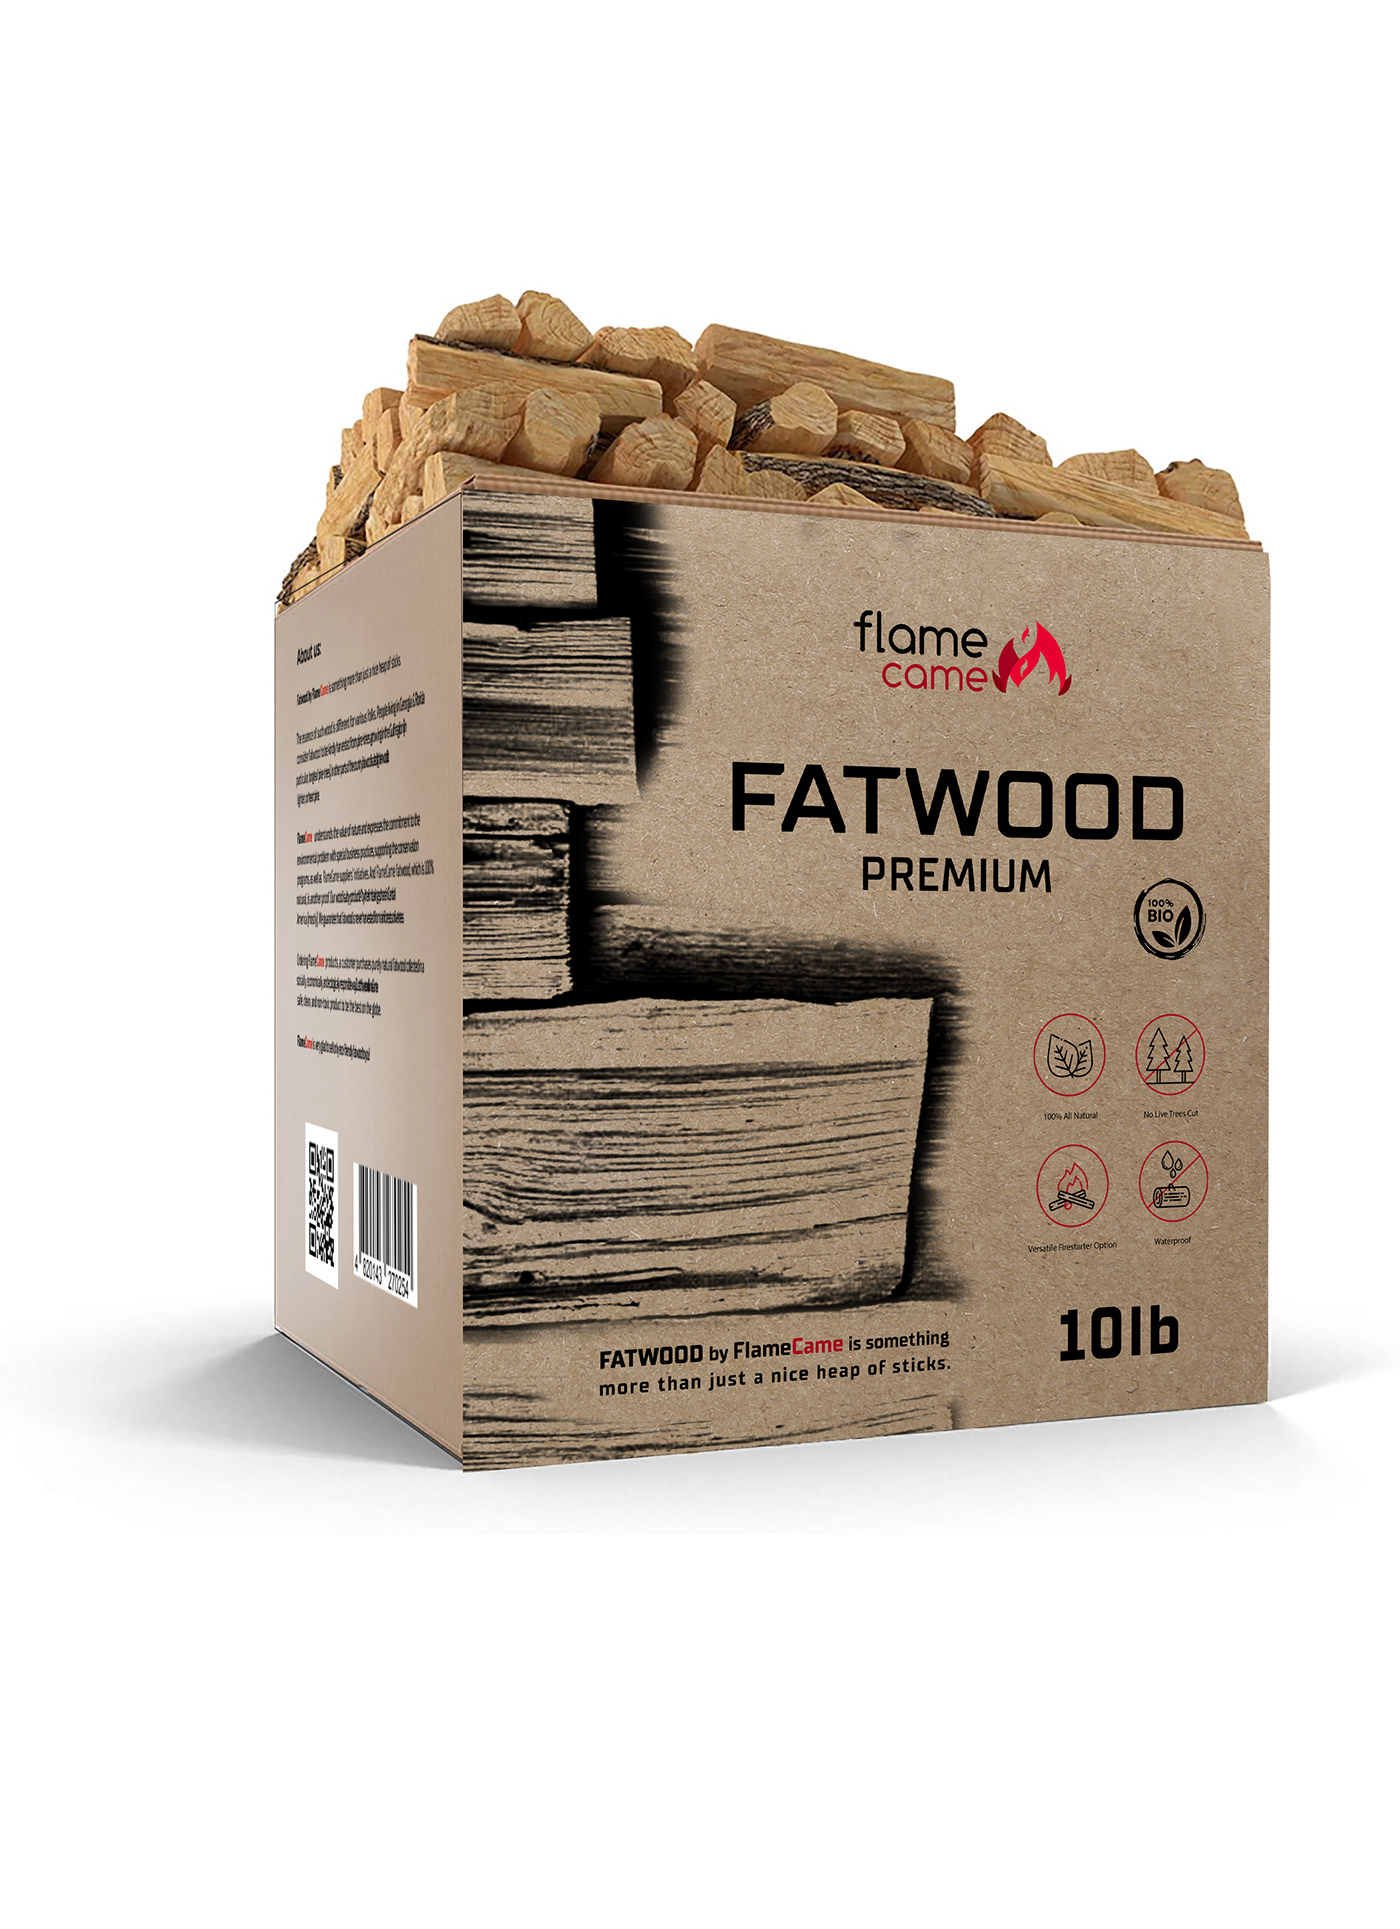 FATWOOD fire flame modern package design  wood